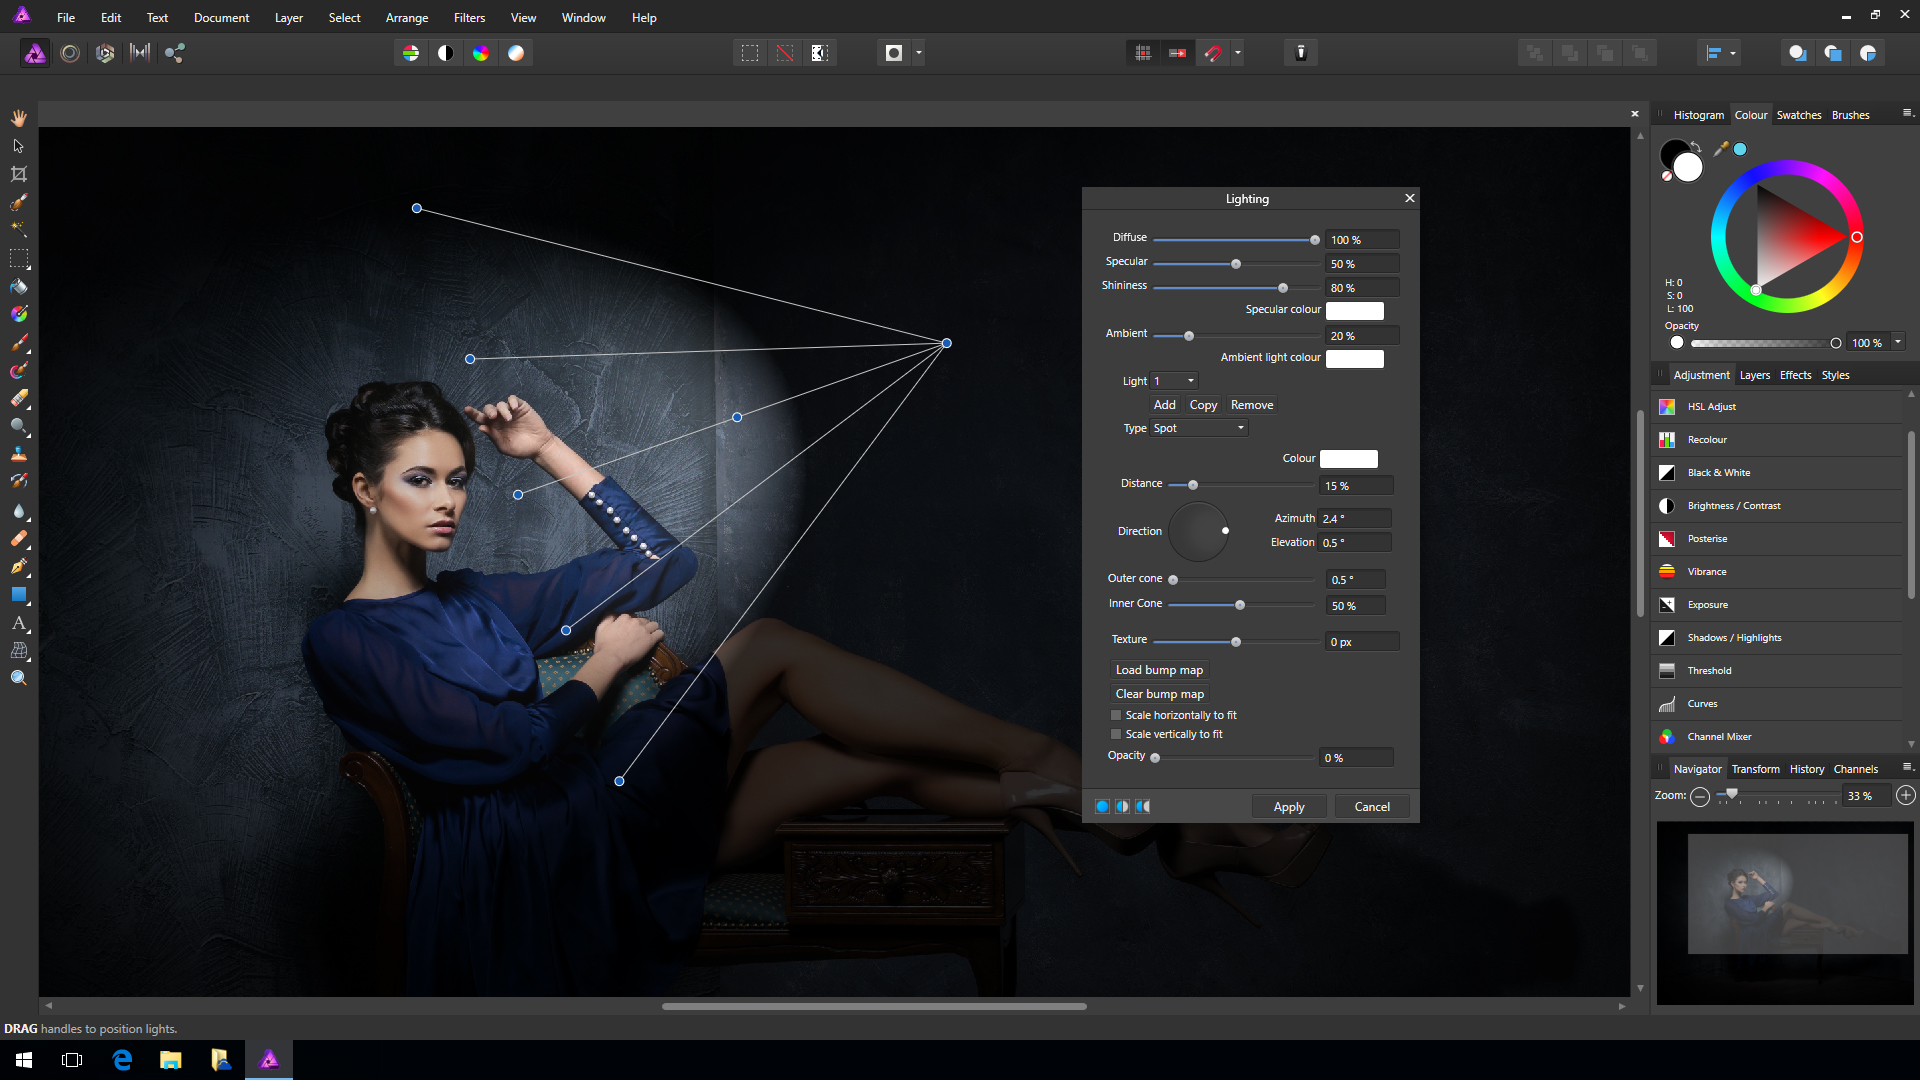 Download Callipygian 3d photo editing software free download Callipygian 3d photo editing software